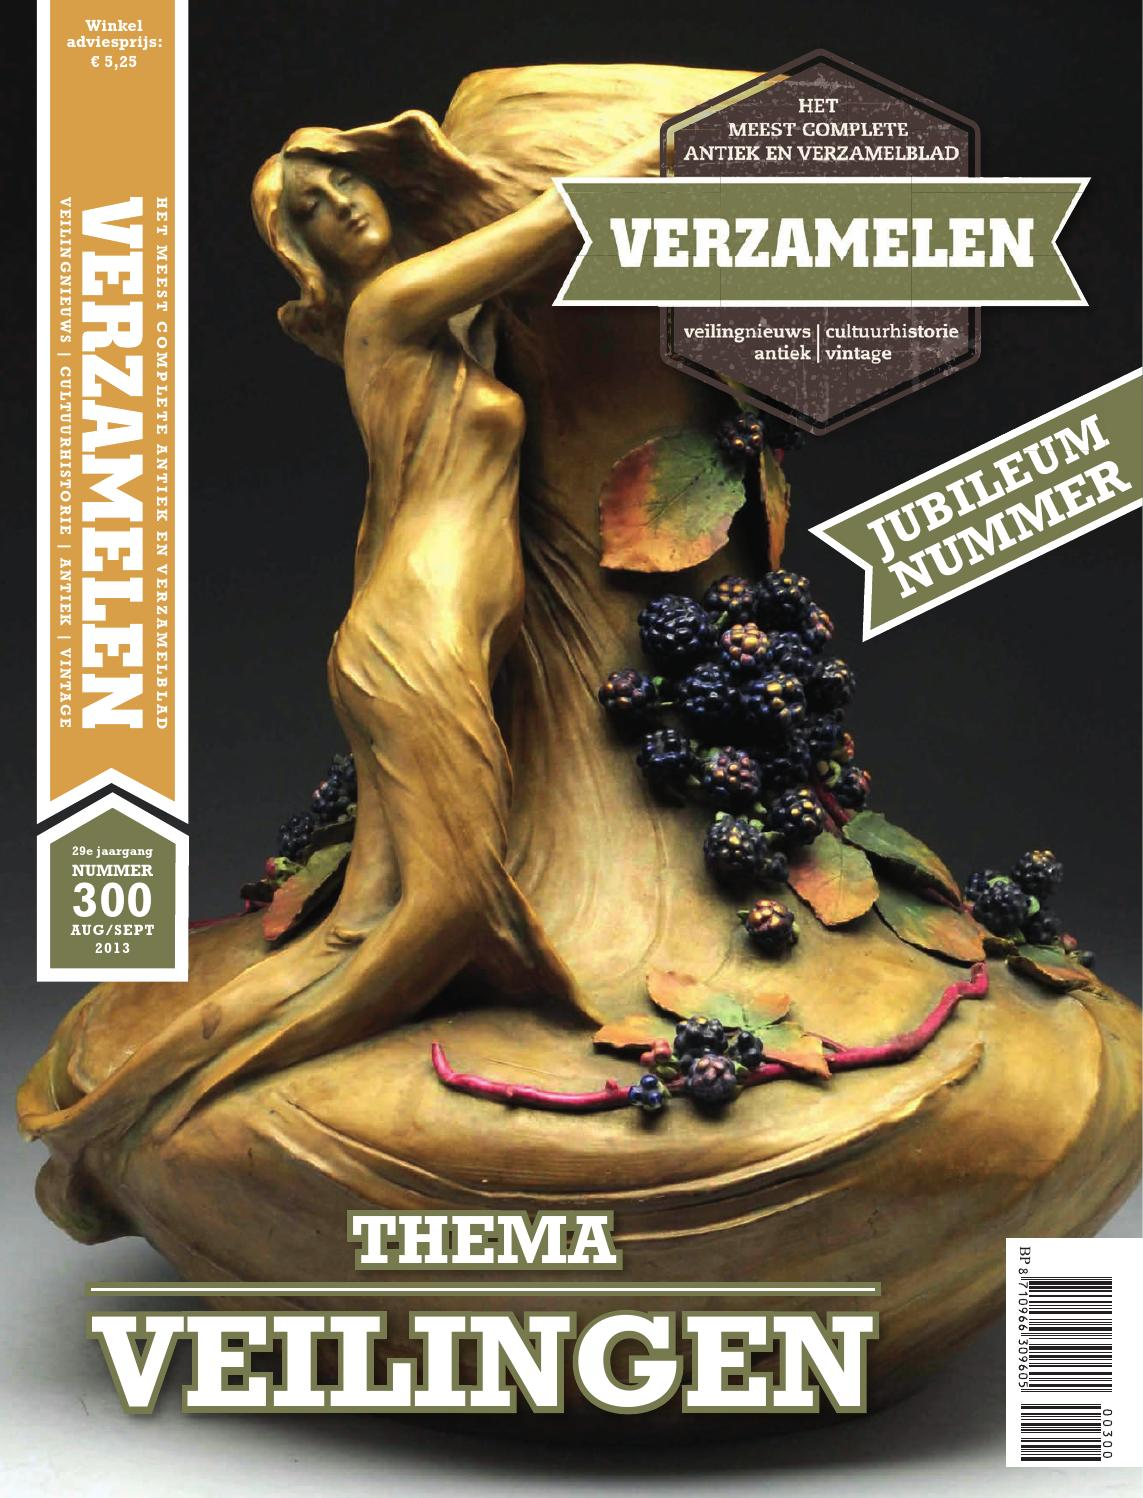 Scheepstelegraaf Te Koop Verzamelen Magazine By Acb Media Issuu